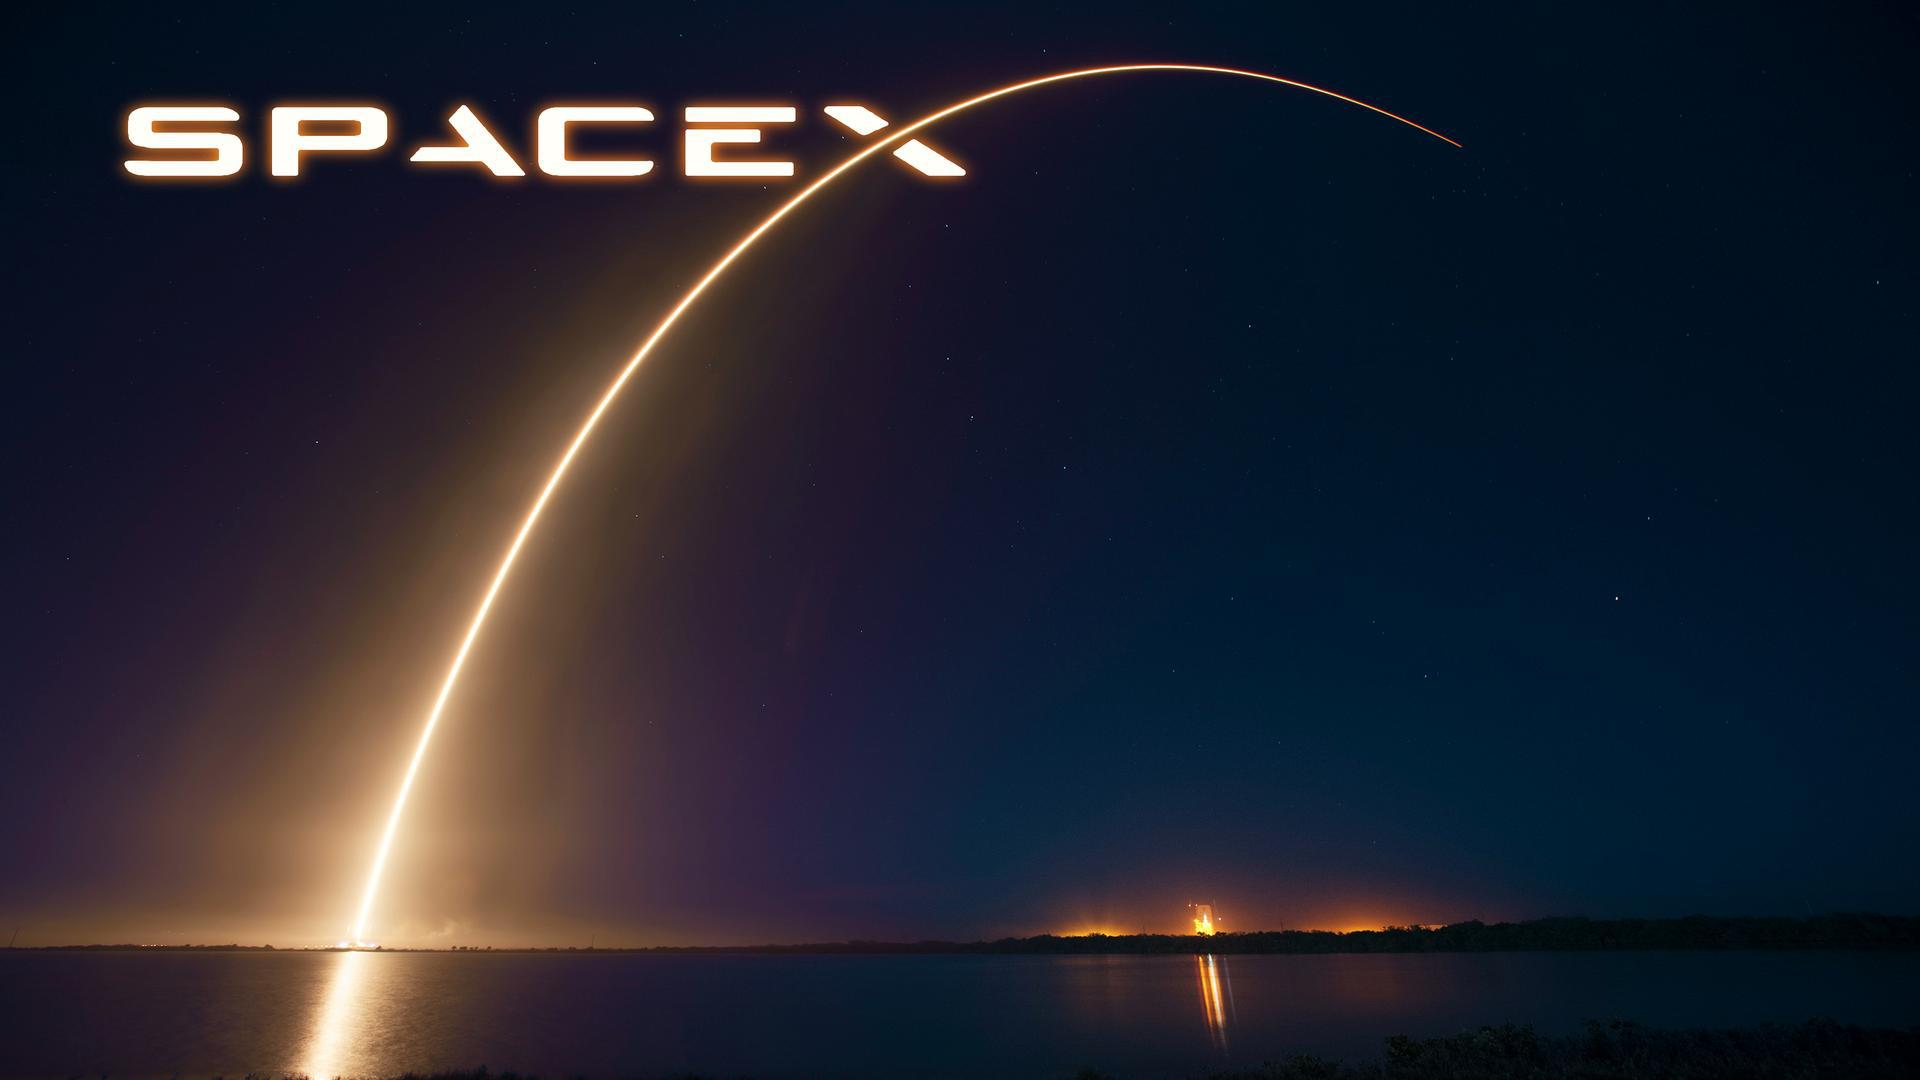 Best 60 SpaceX Desktop Backgrounds on HipWallpaper SpaceX 1920x1080